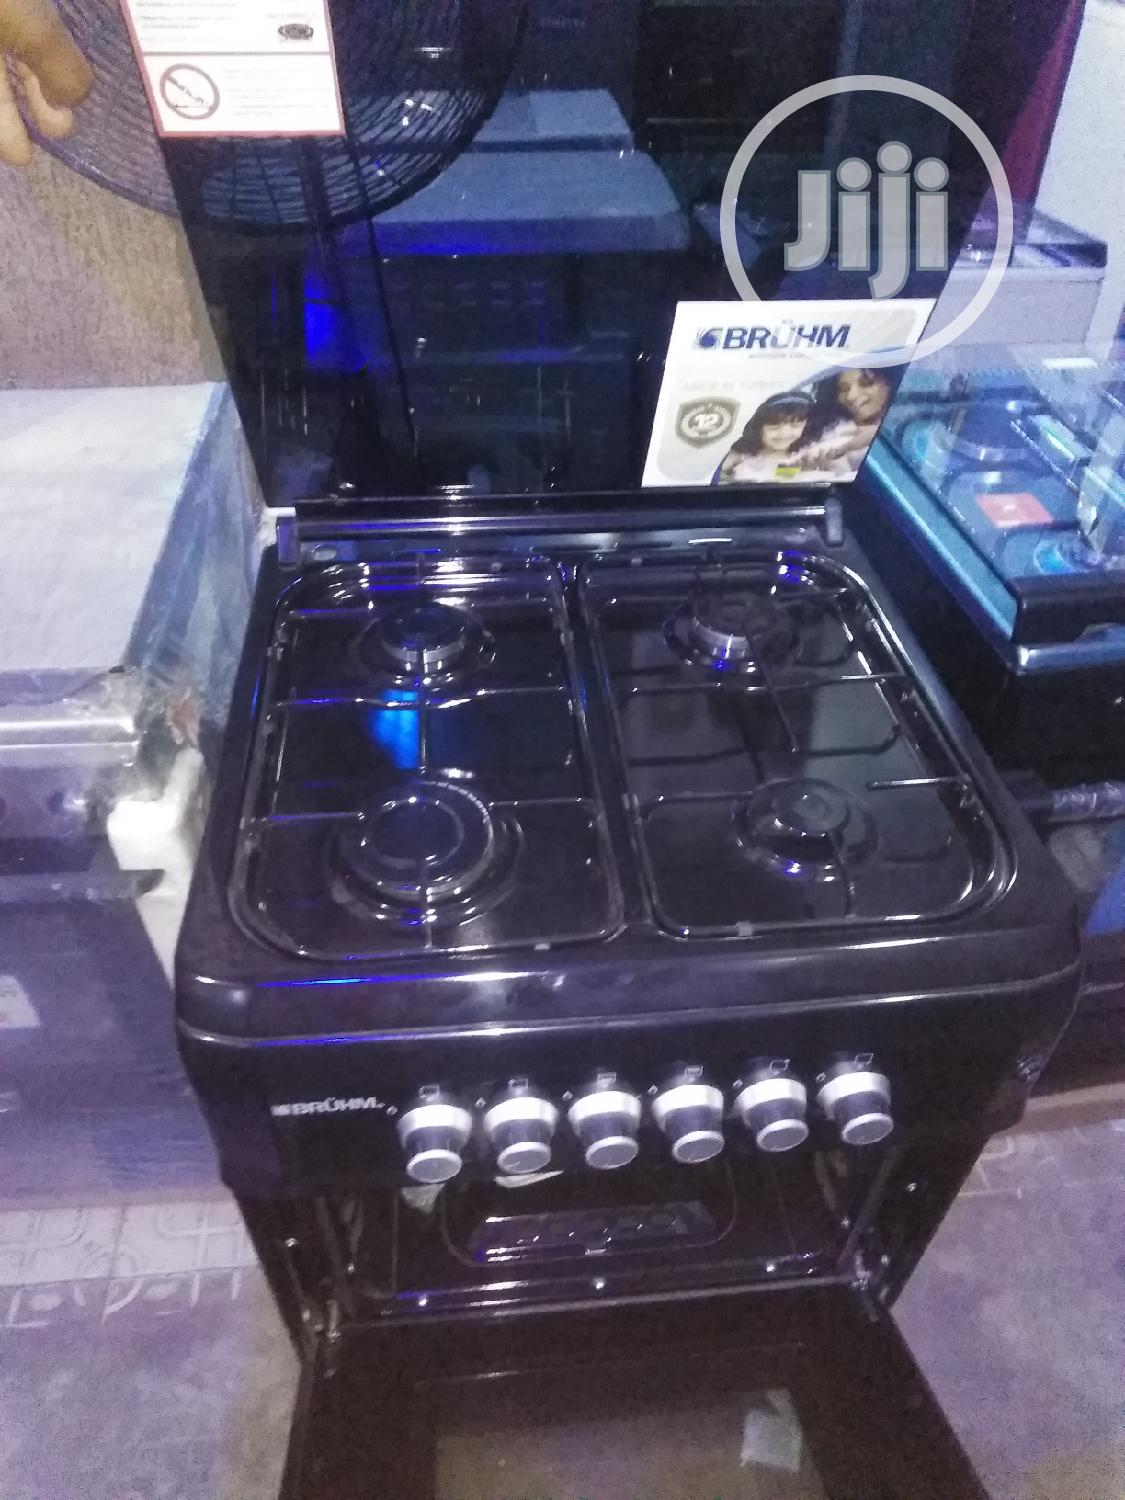 Bruhm 60*60 Anti Rust Gas Cooker, Oven And Grill, 2yrs Warranty.